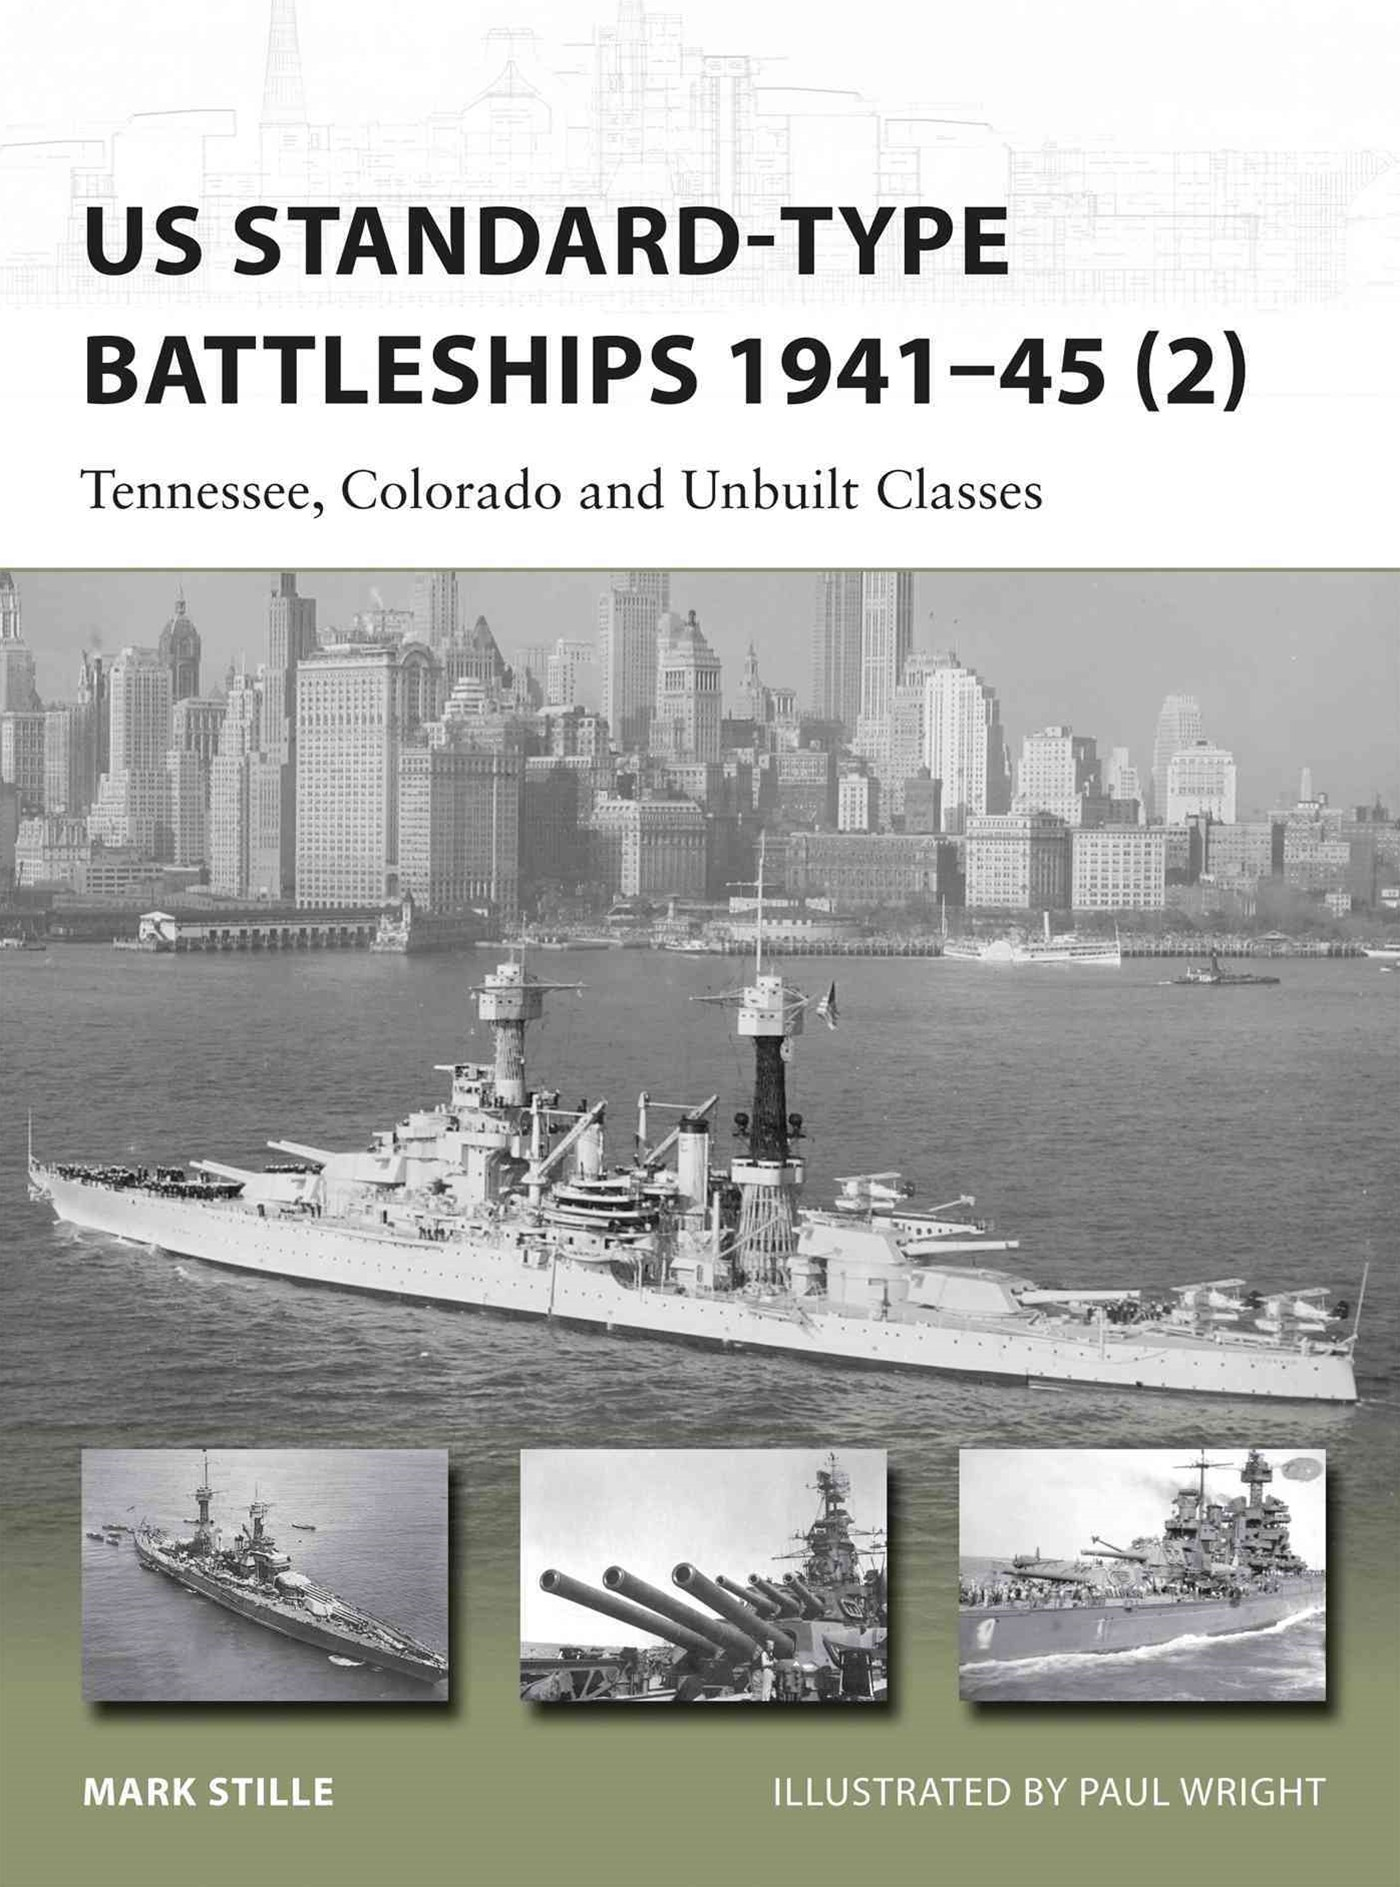 US Standard-Type Battleships 1941-45